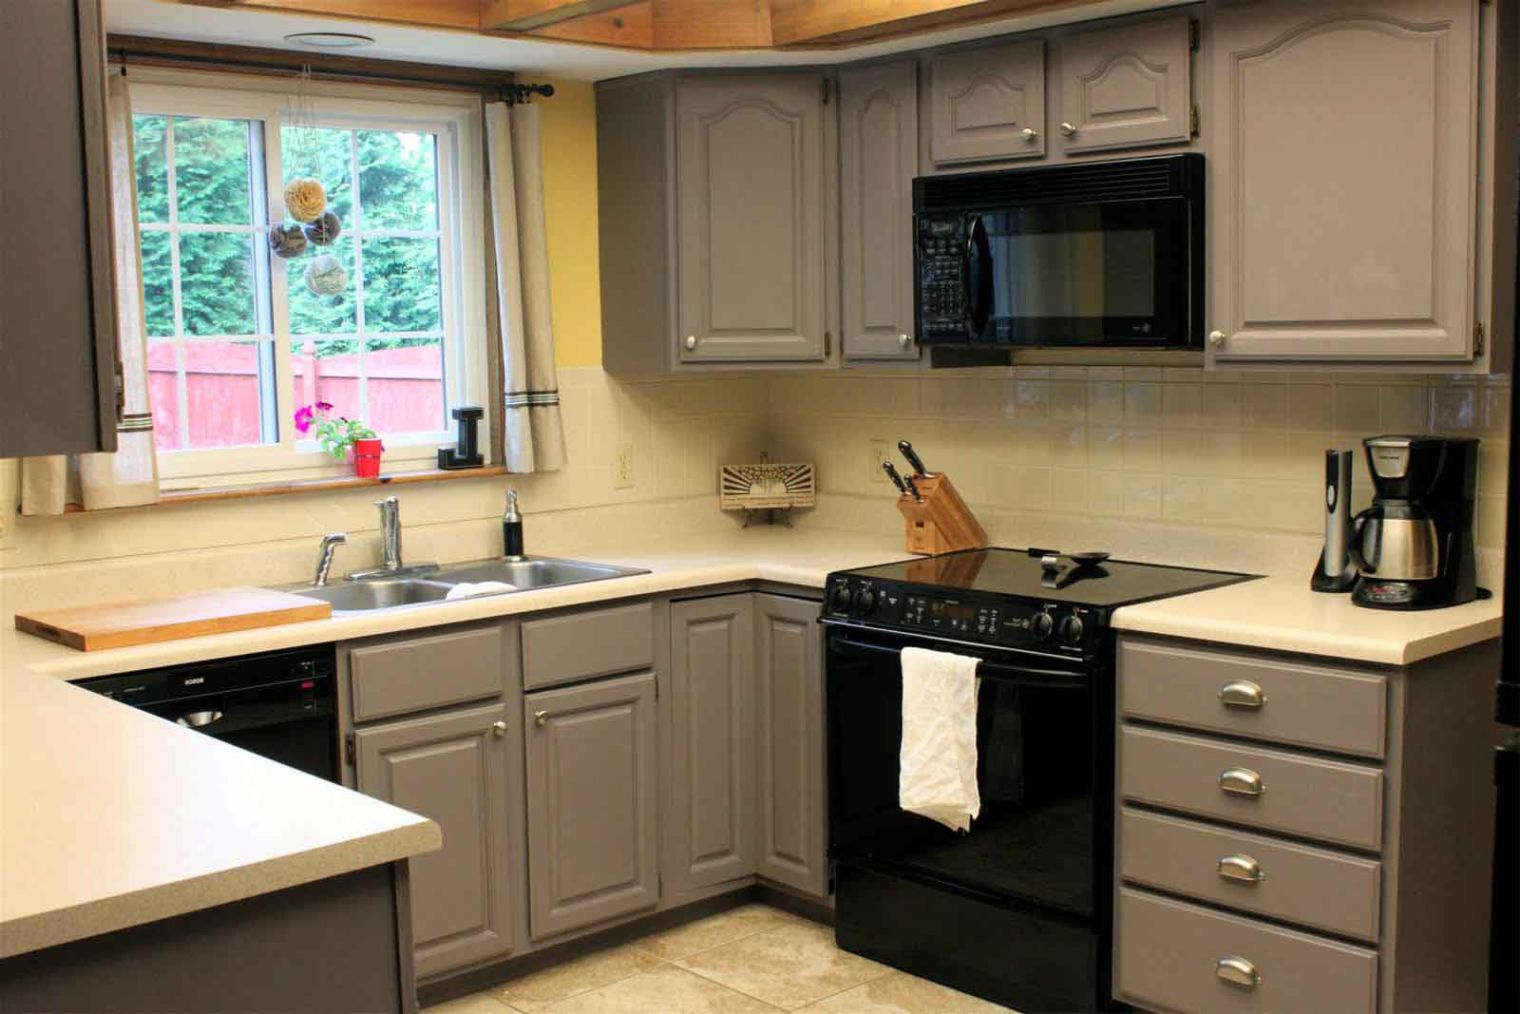 painted cabinet ideas kitchen grey painted kitchen cabinets in small kitchen space 24348